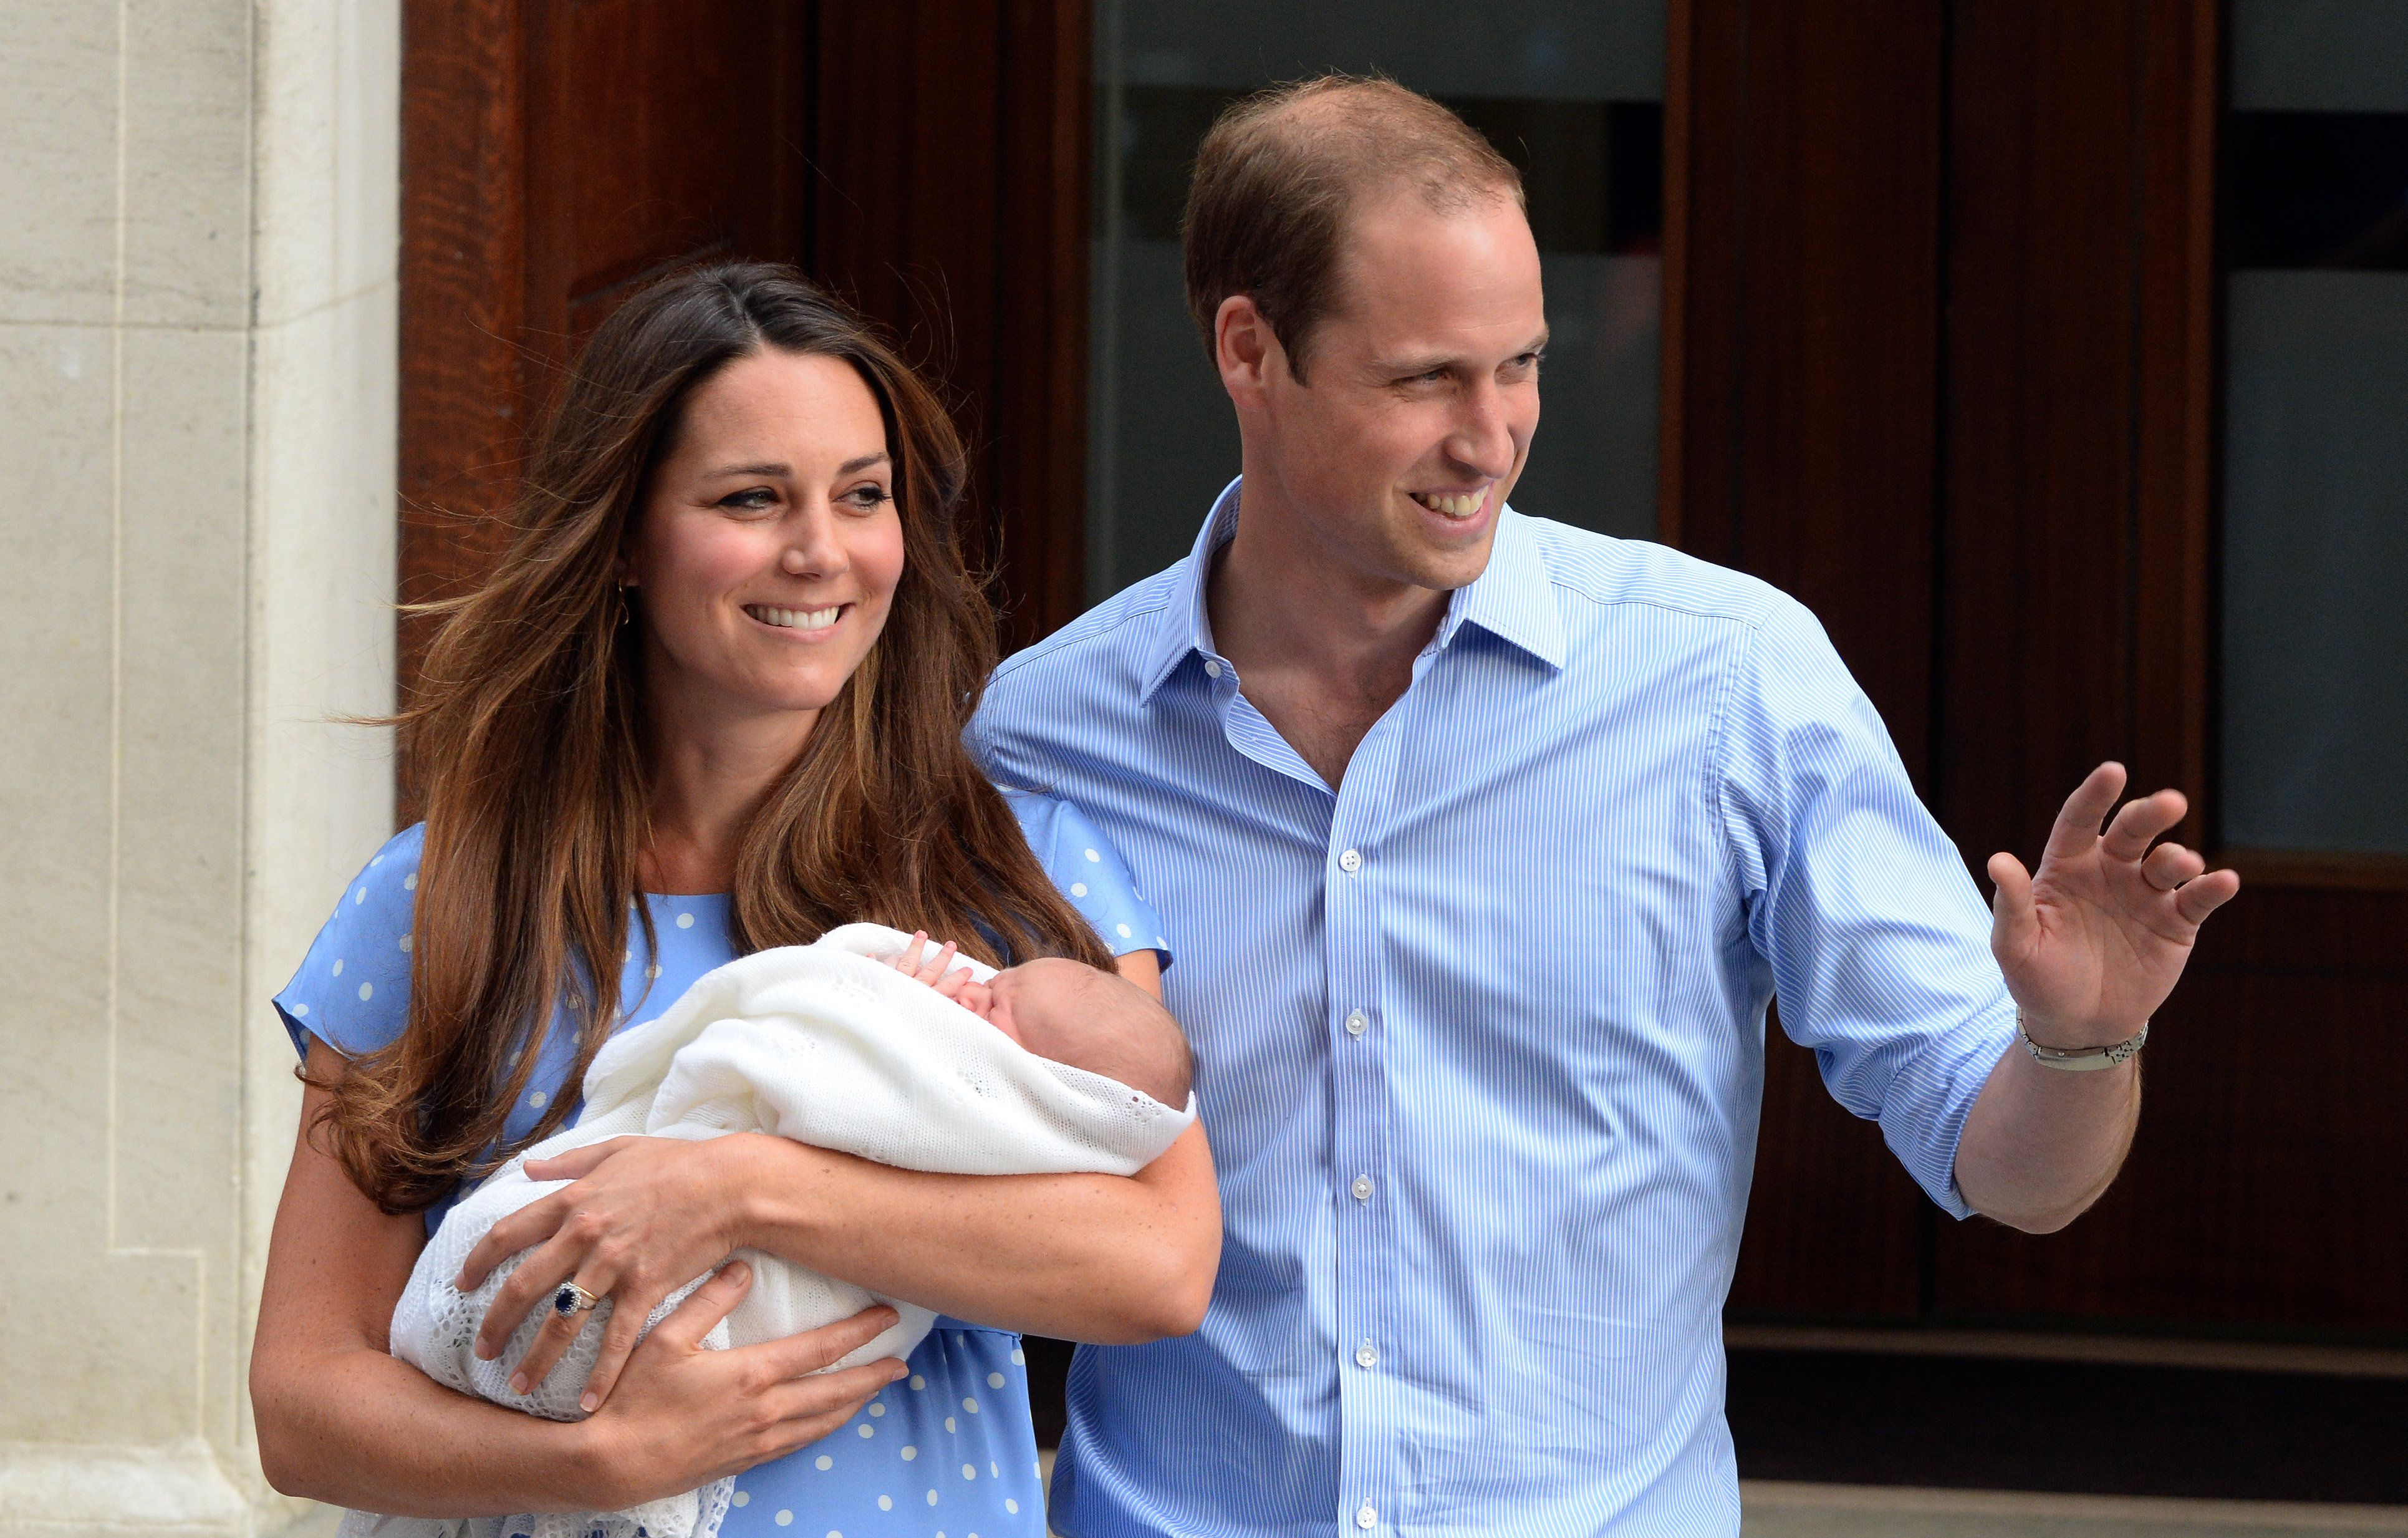 The Duke and Duchess of Cambridgeposed for initial public photos of their first child, Prince George, after he was born